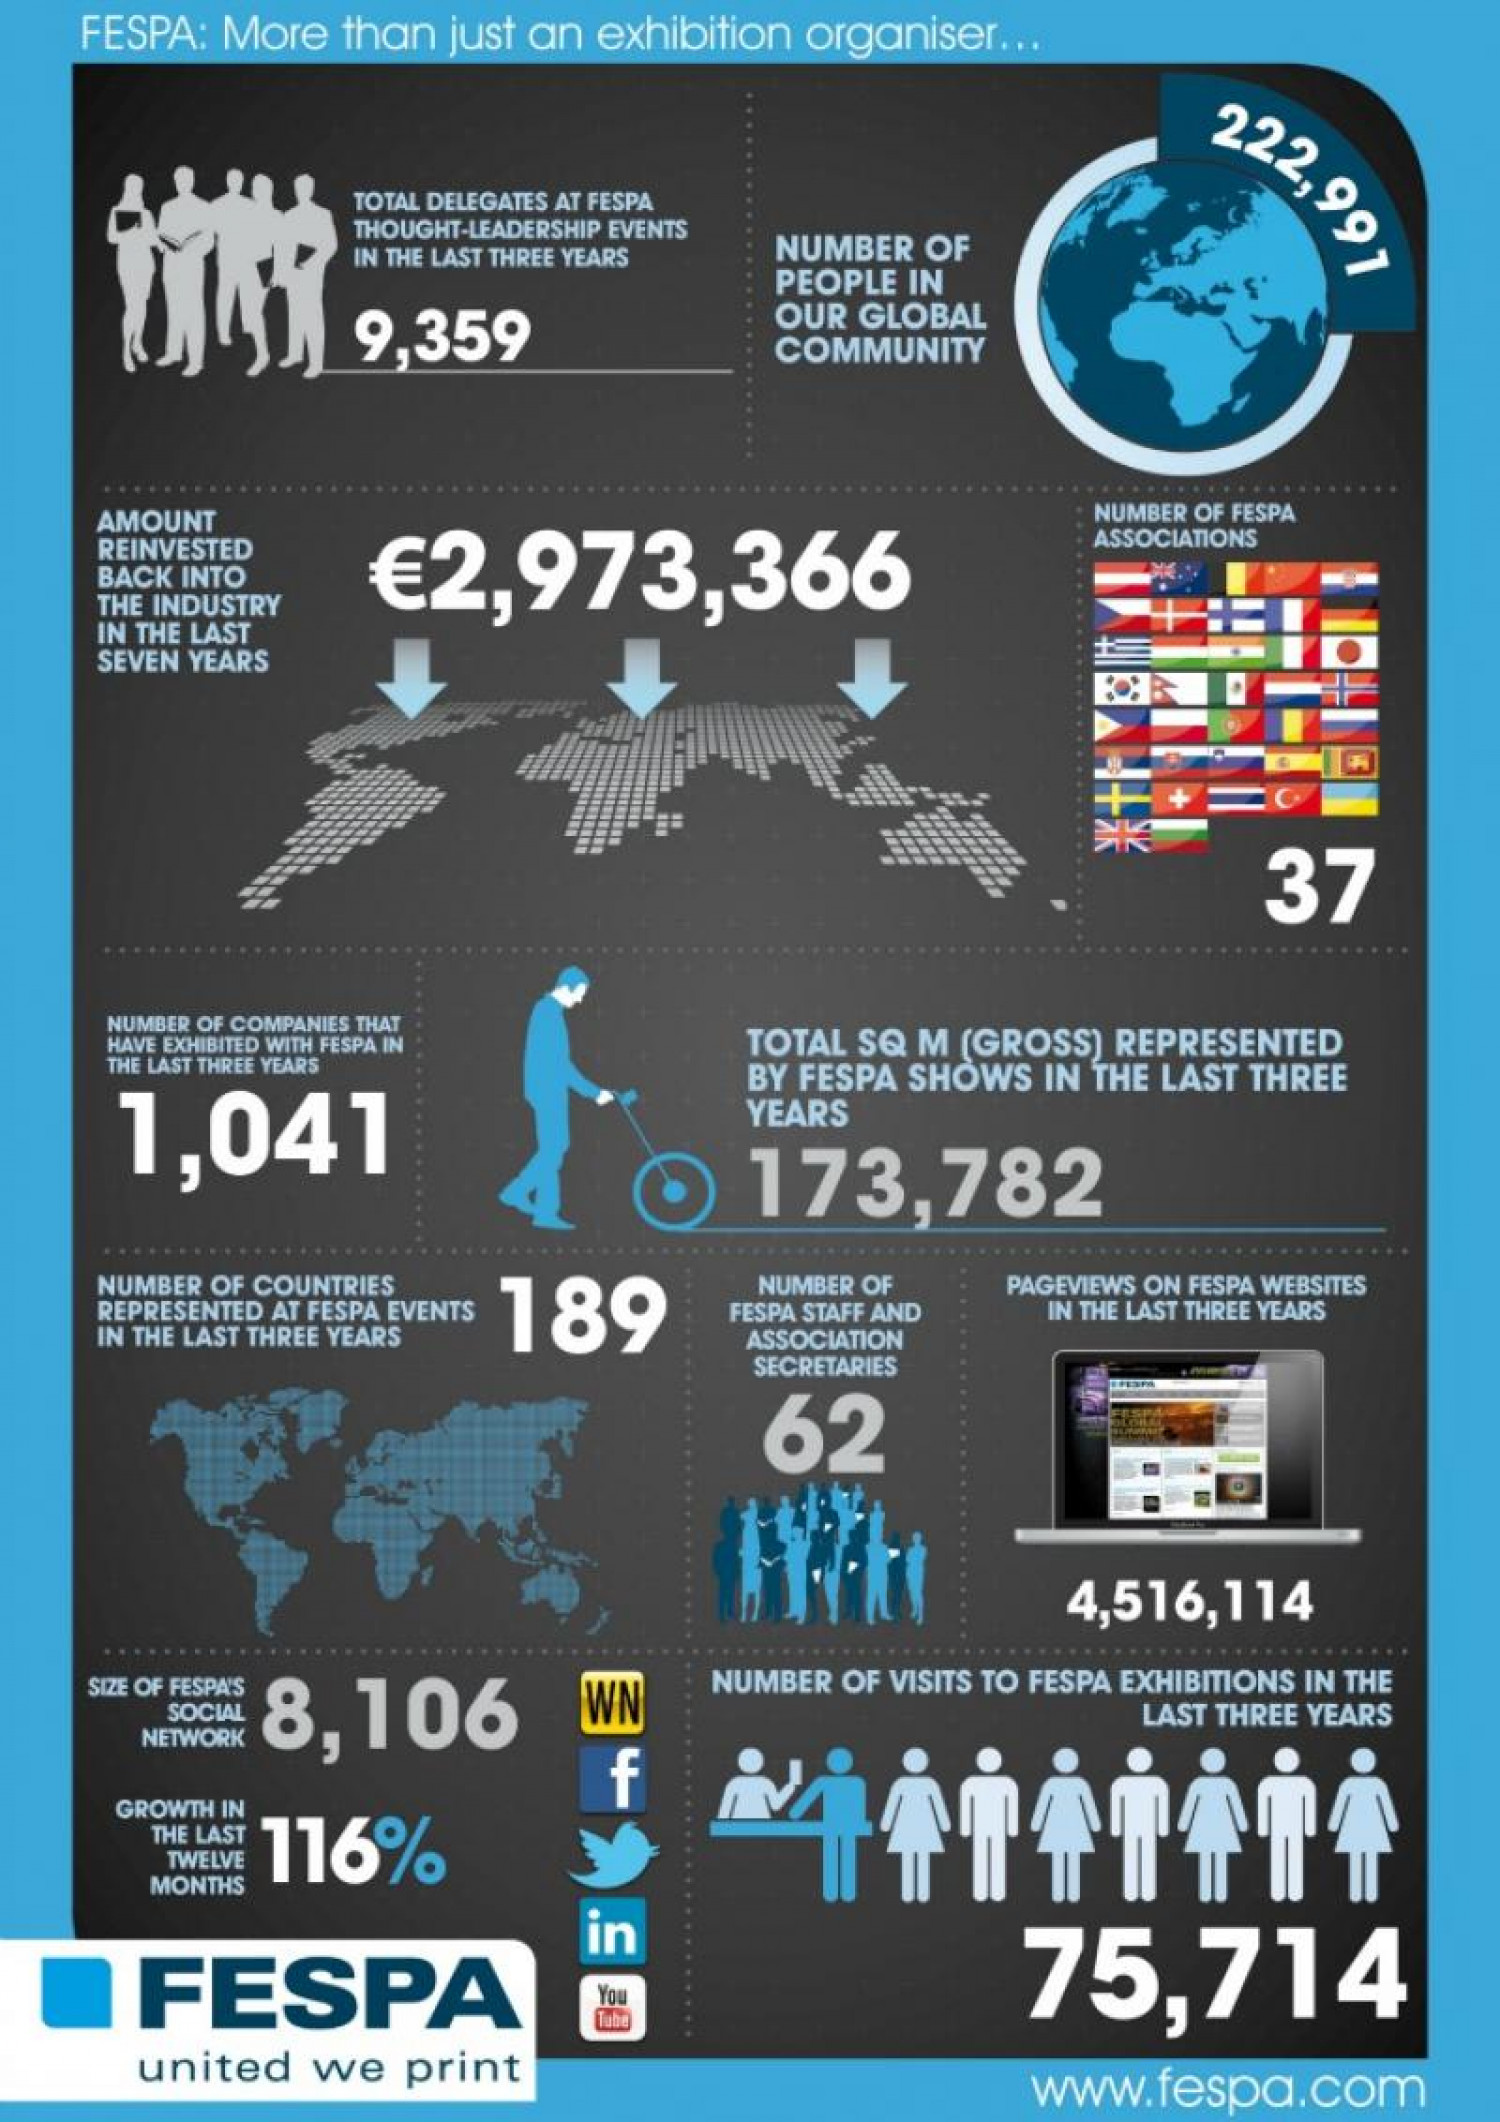 FESPA - United We Print Infographic